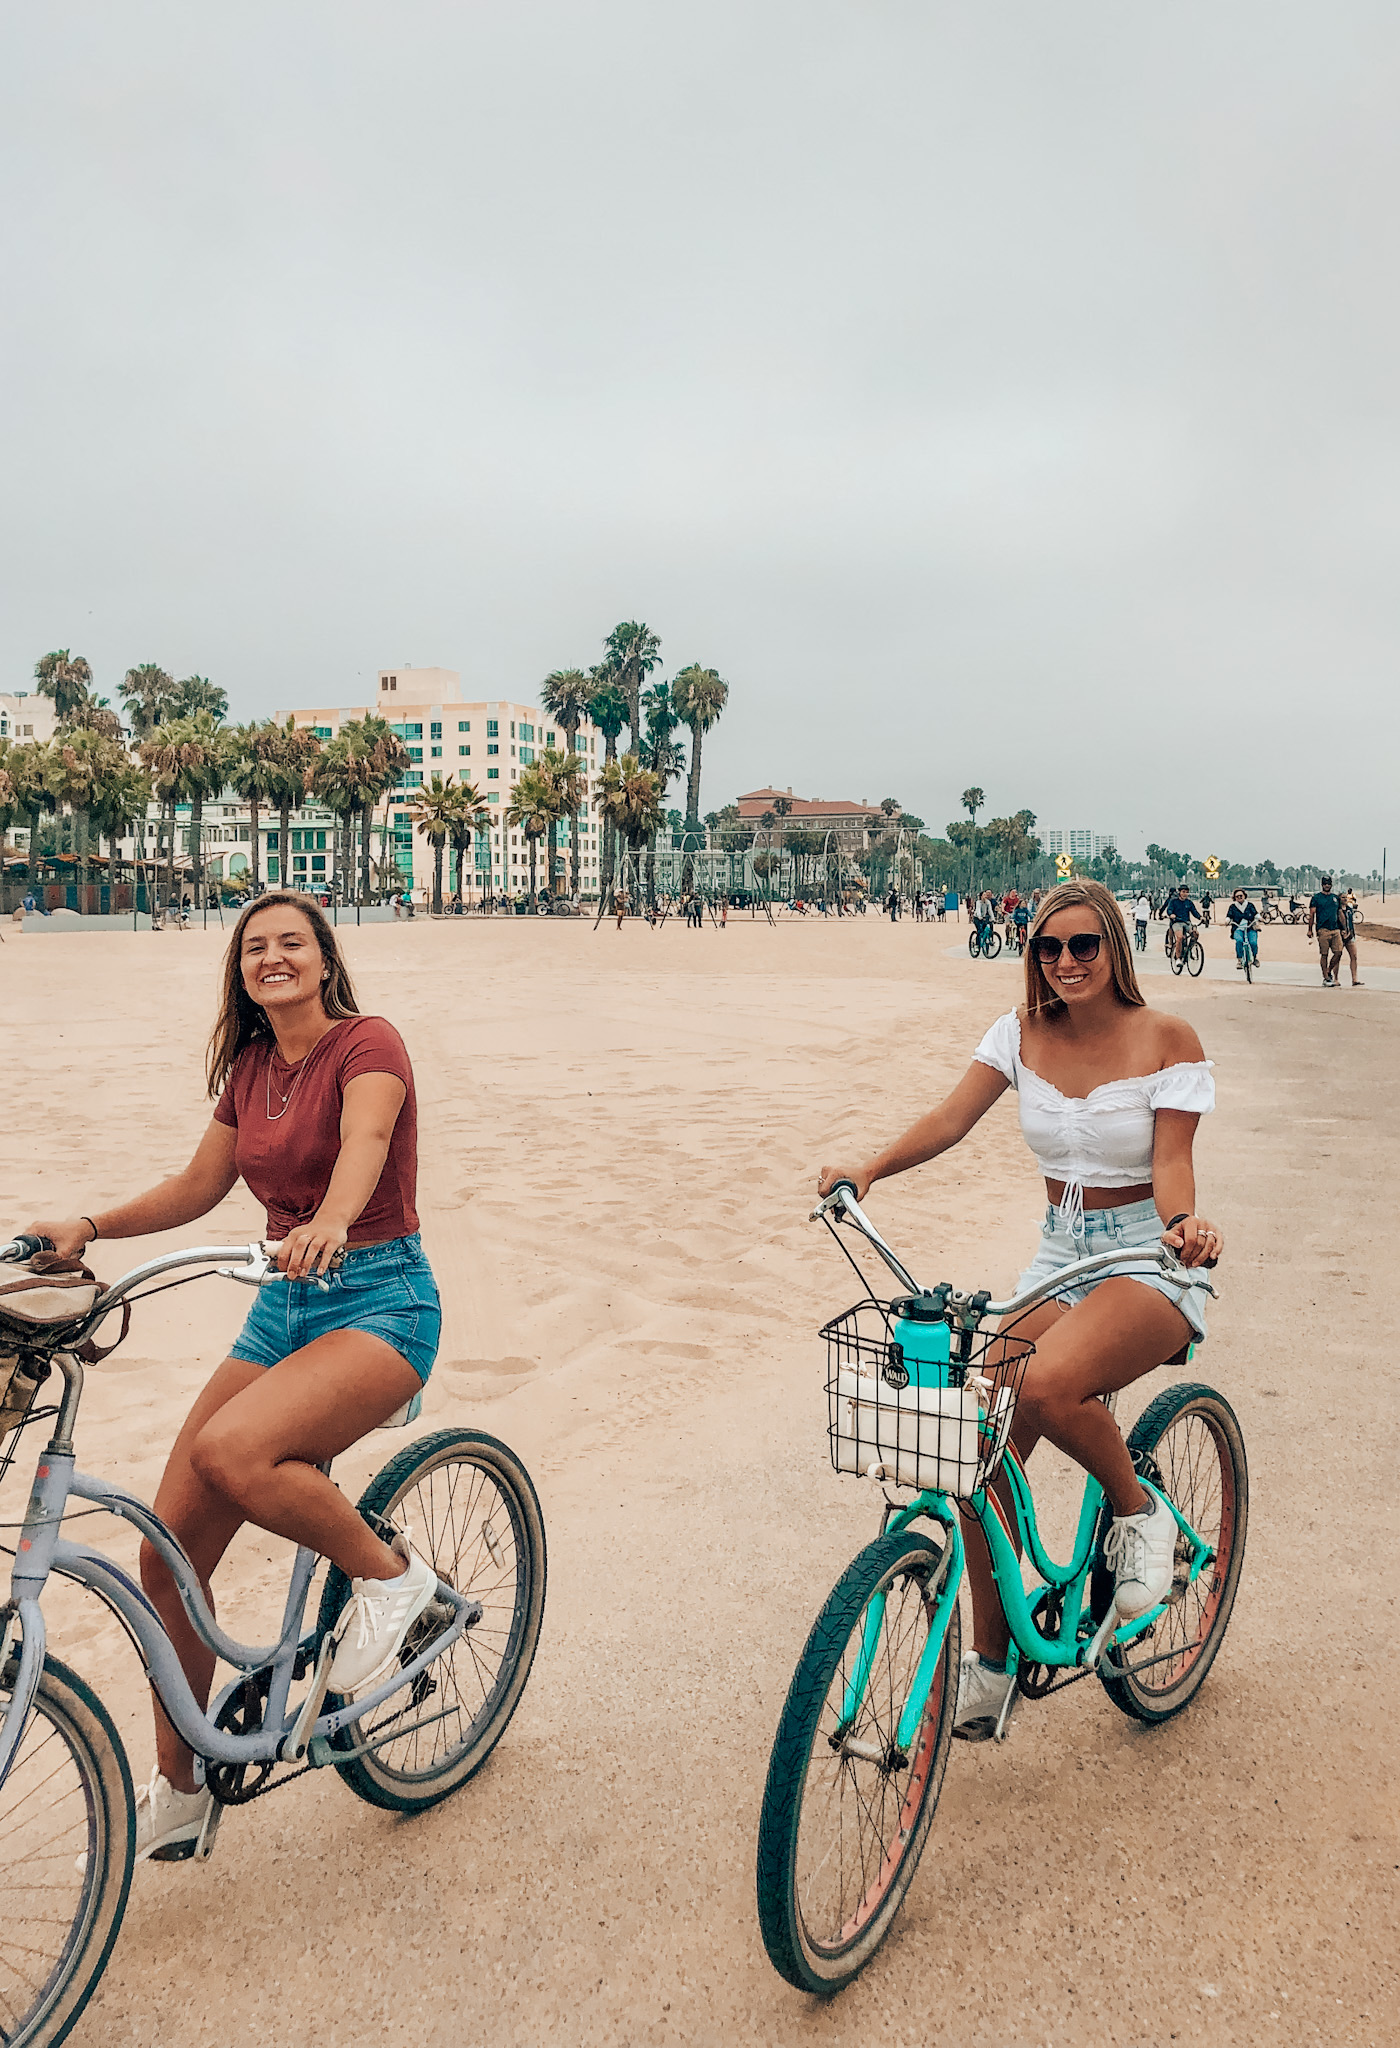 Biking from Venice Beach to Santa Monica Pier!